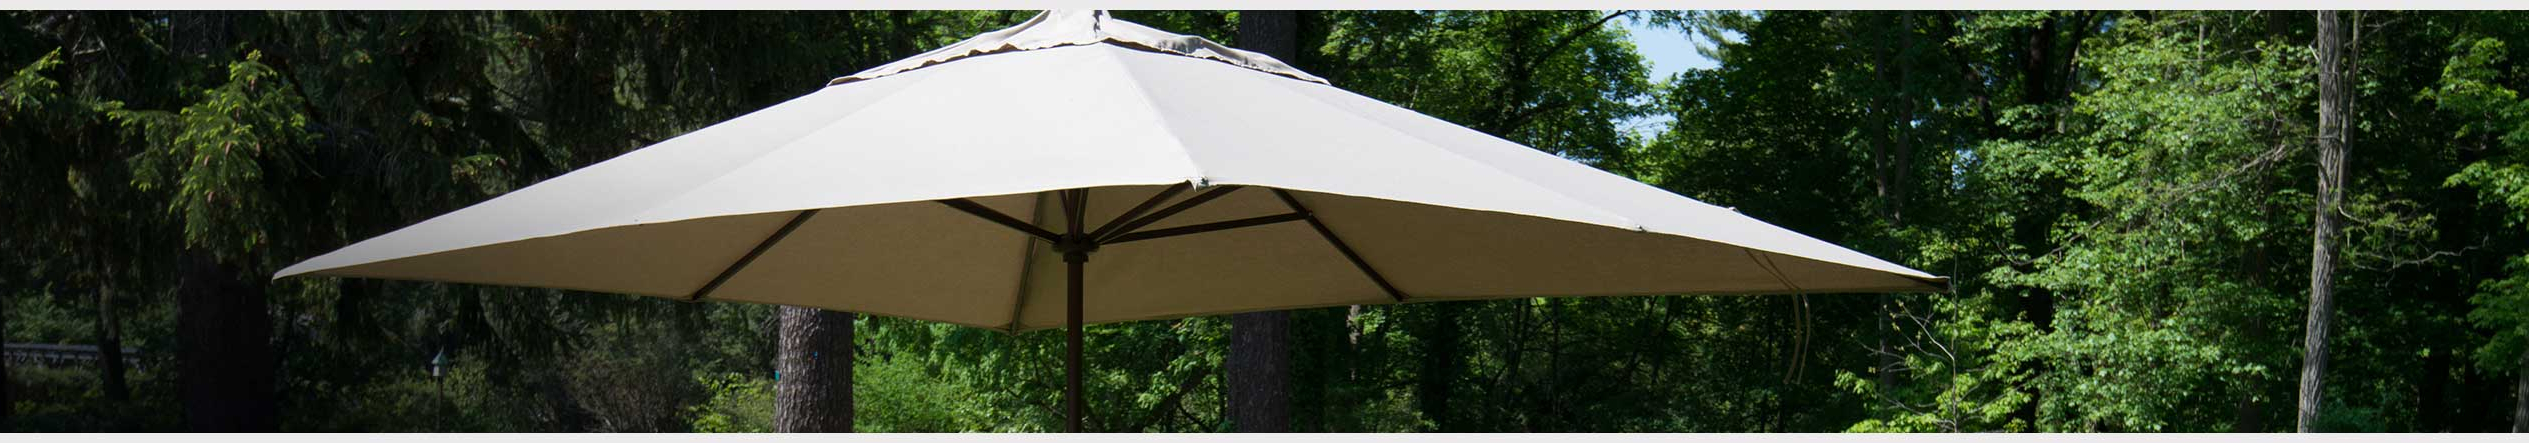 Outdoor And Patio Umbrellas At Jordan's Furniture In Ct, Ma, Nh And Ri Pertaining To Famous New Haven Market Umbrellas (View 17 of 20)